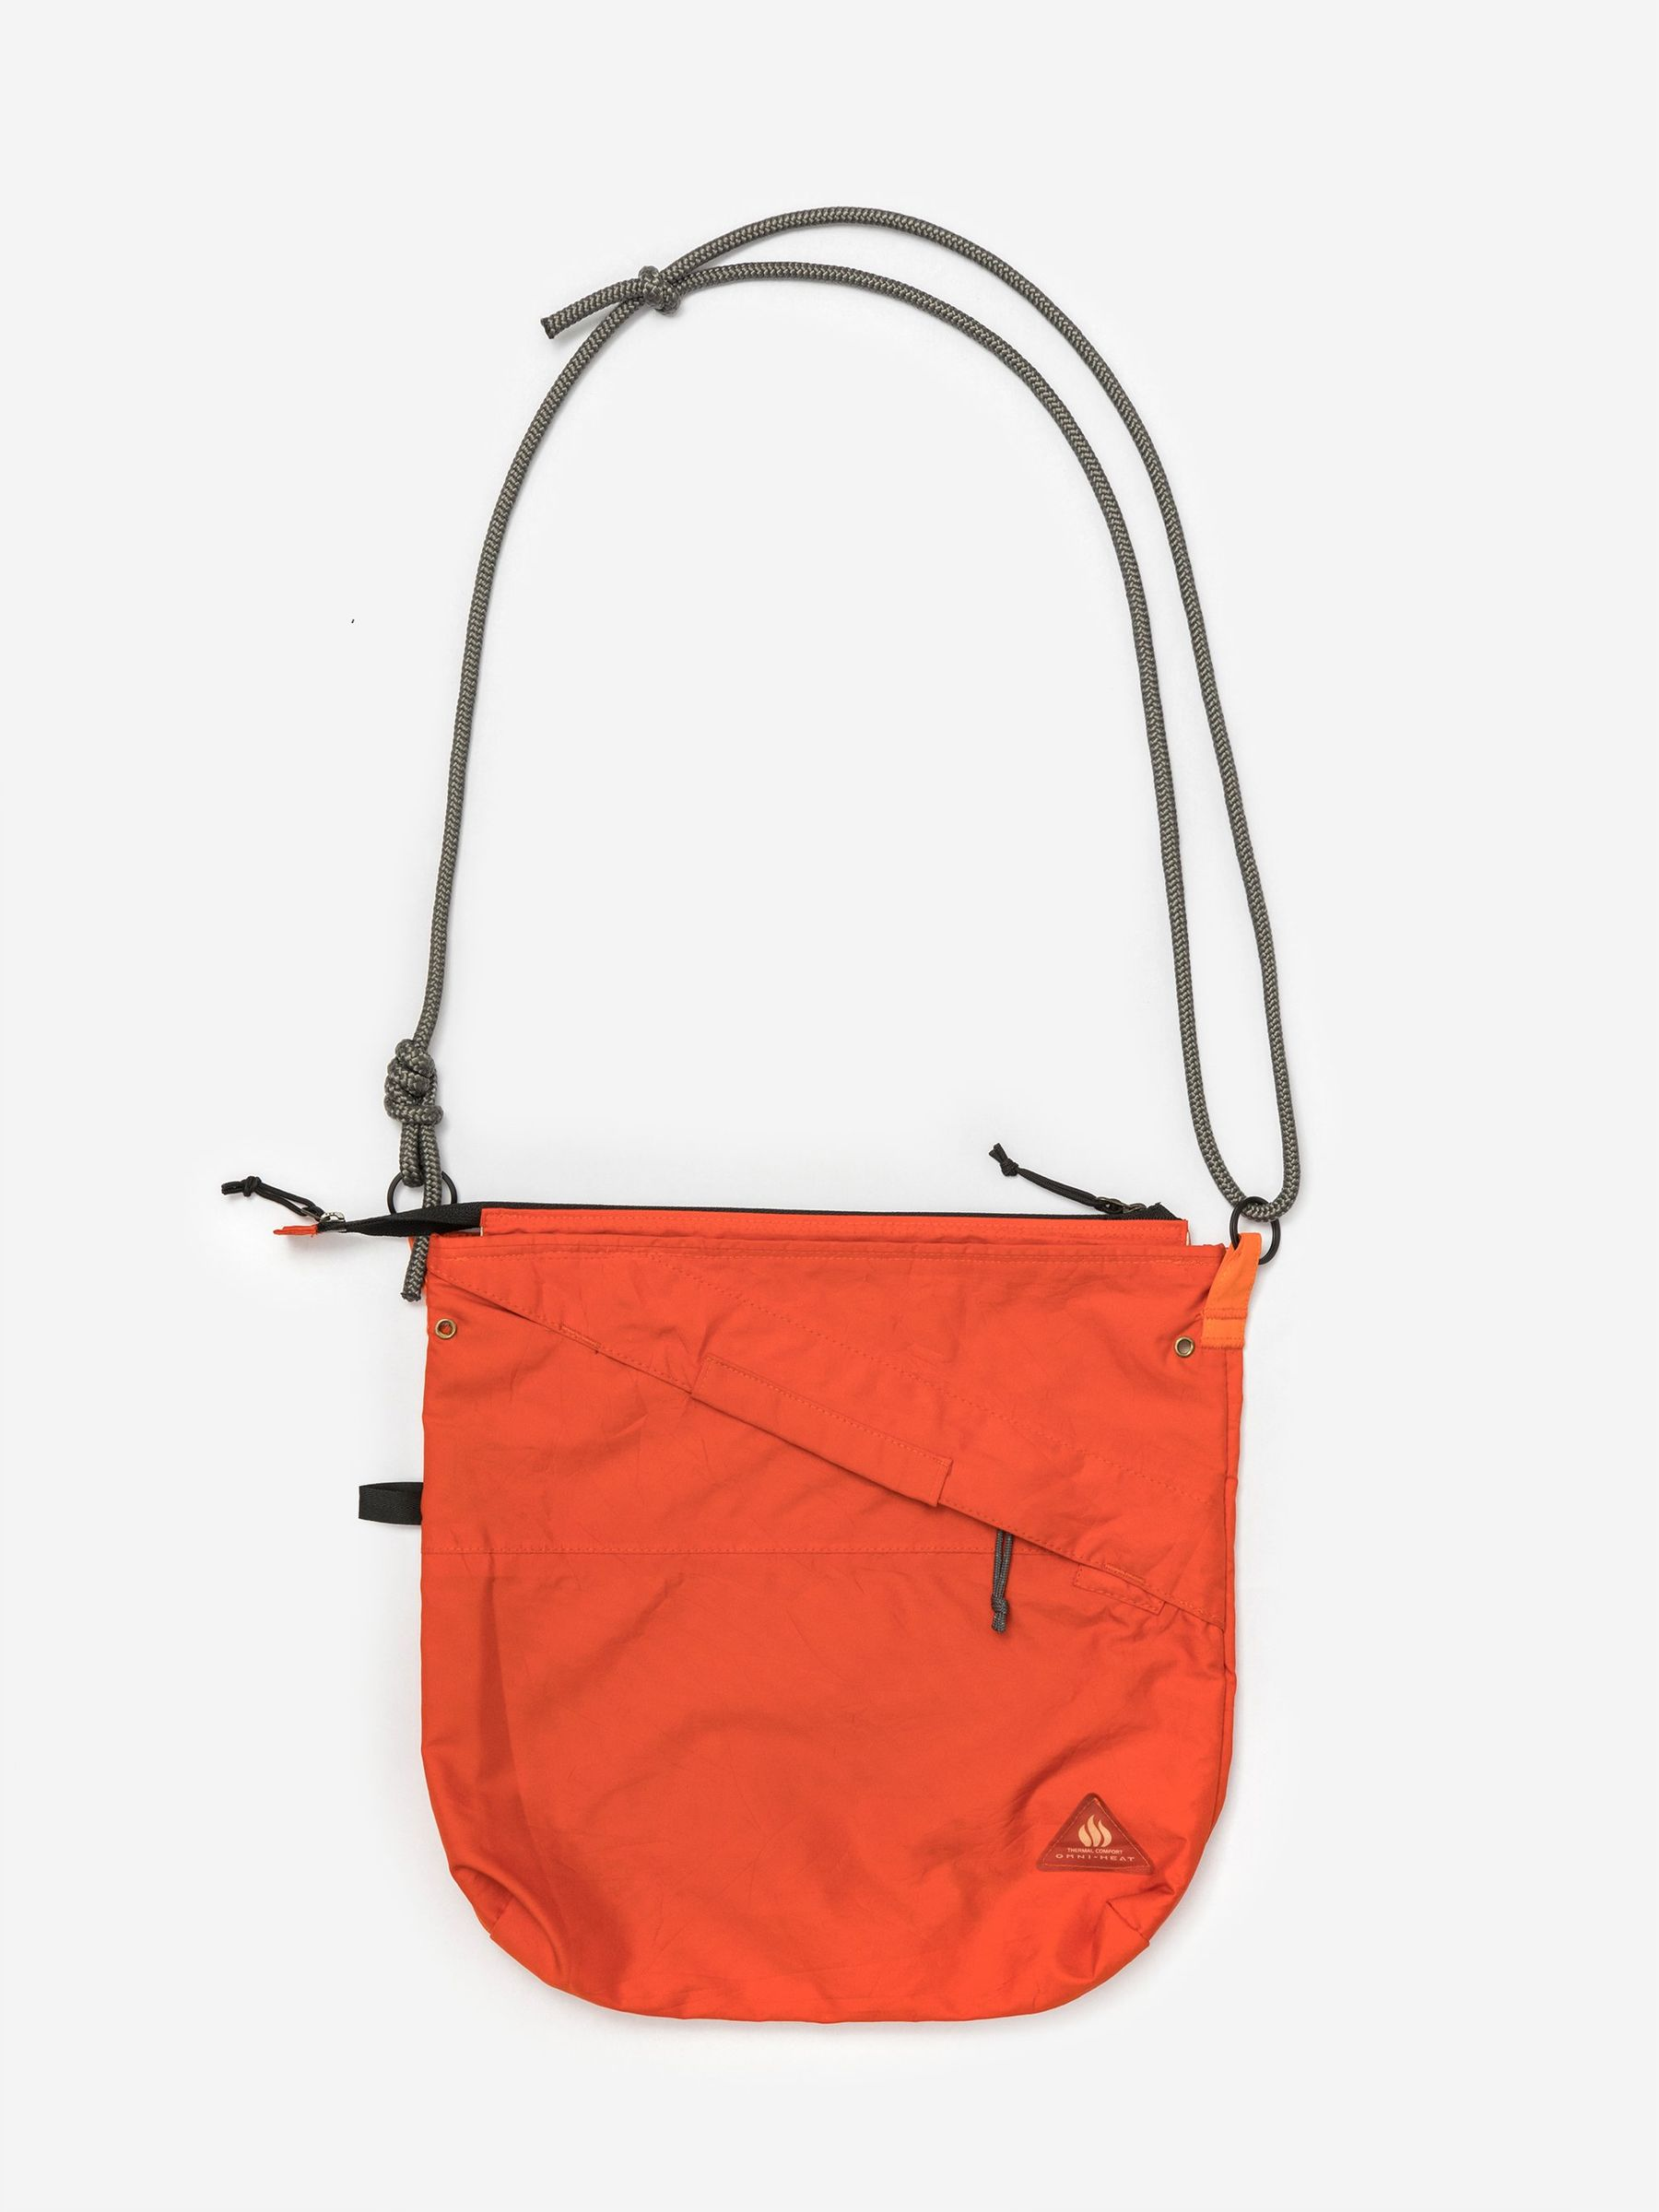 GREATER GOODS - Side Bag Multicolor - Image 3